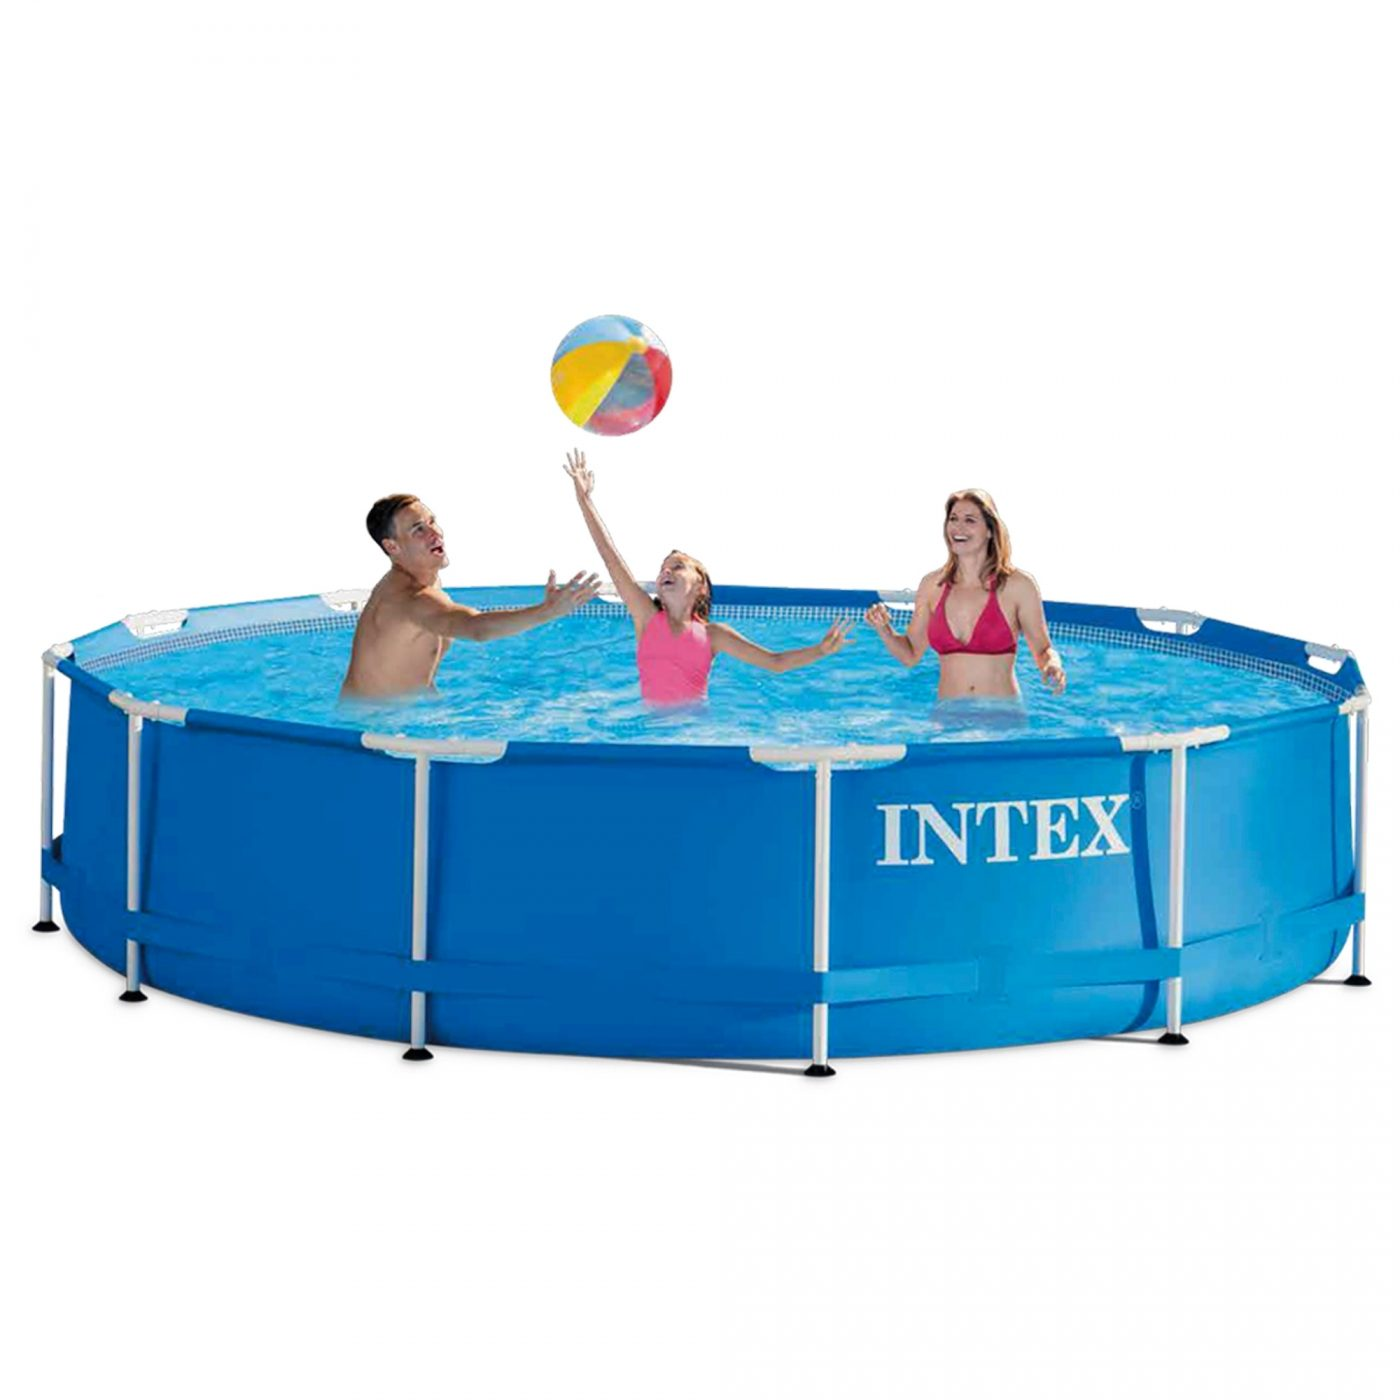 Piscina desmontable intex depuradora 366x76 cm l for Depuradora piscina